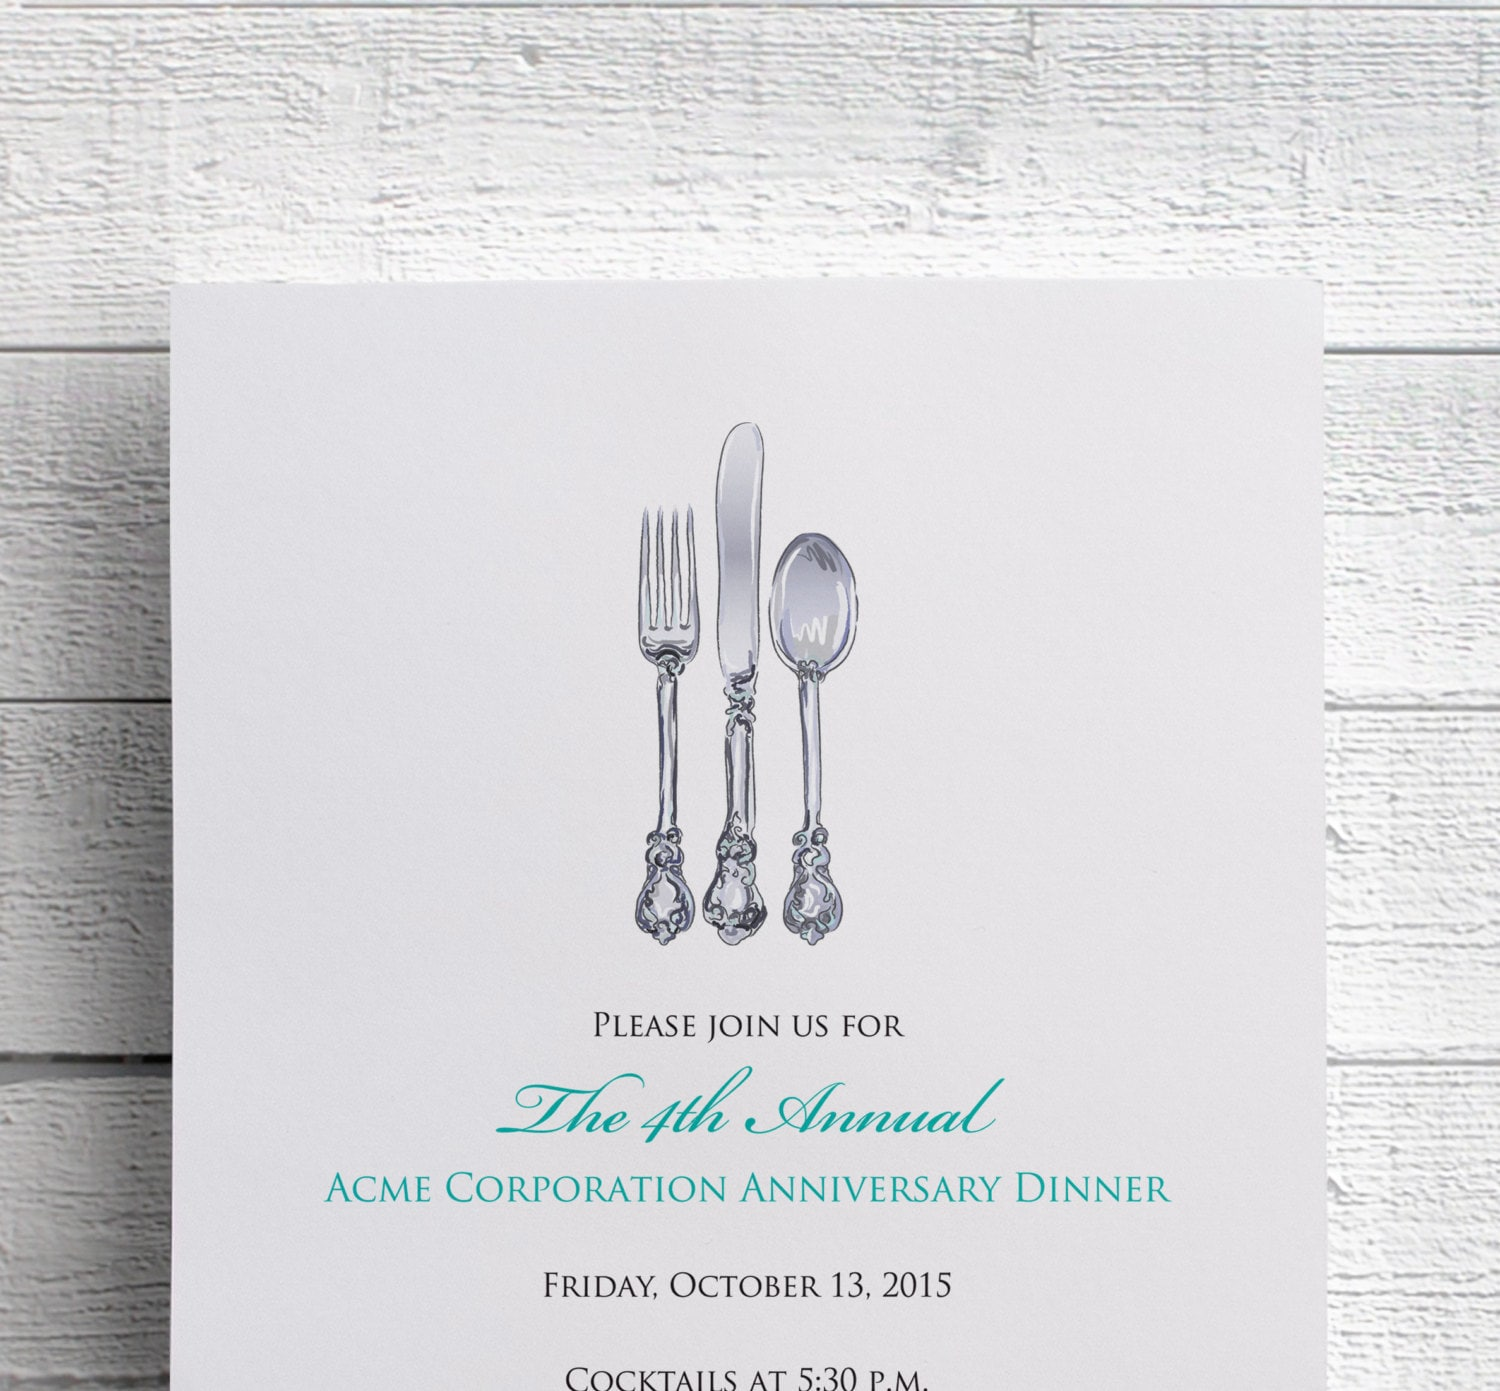 Rehearsal dinner invitations wedding dinner invitations zoom stopboris Images